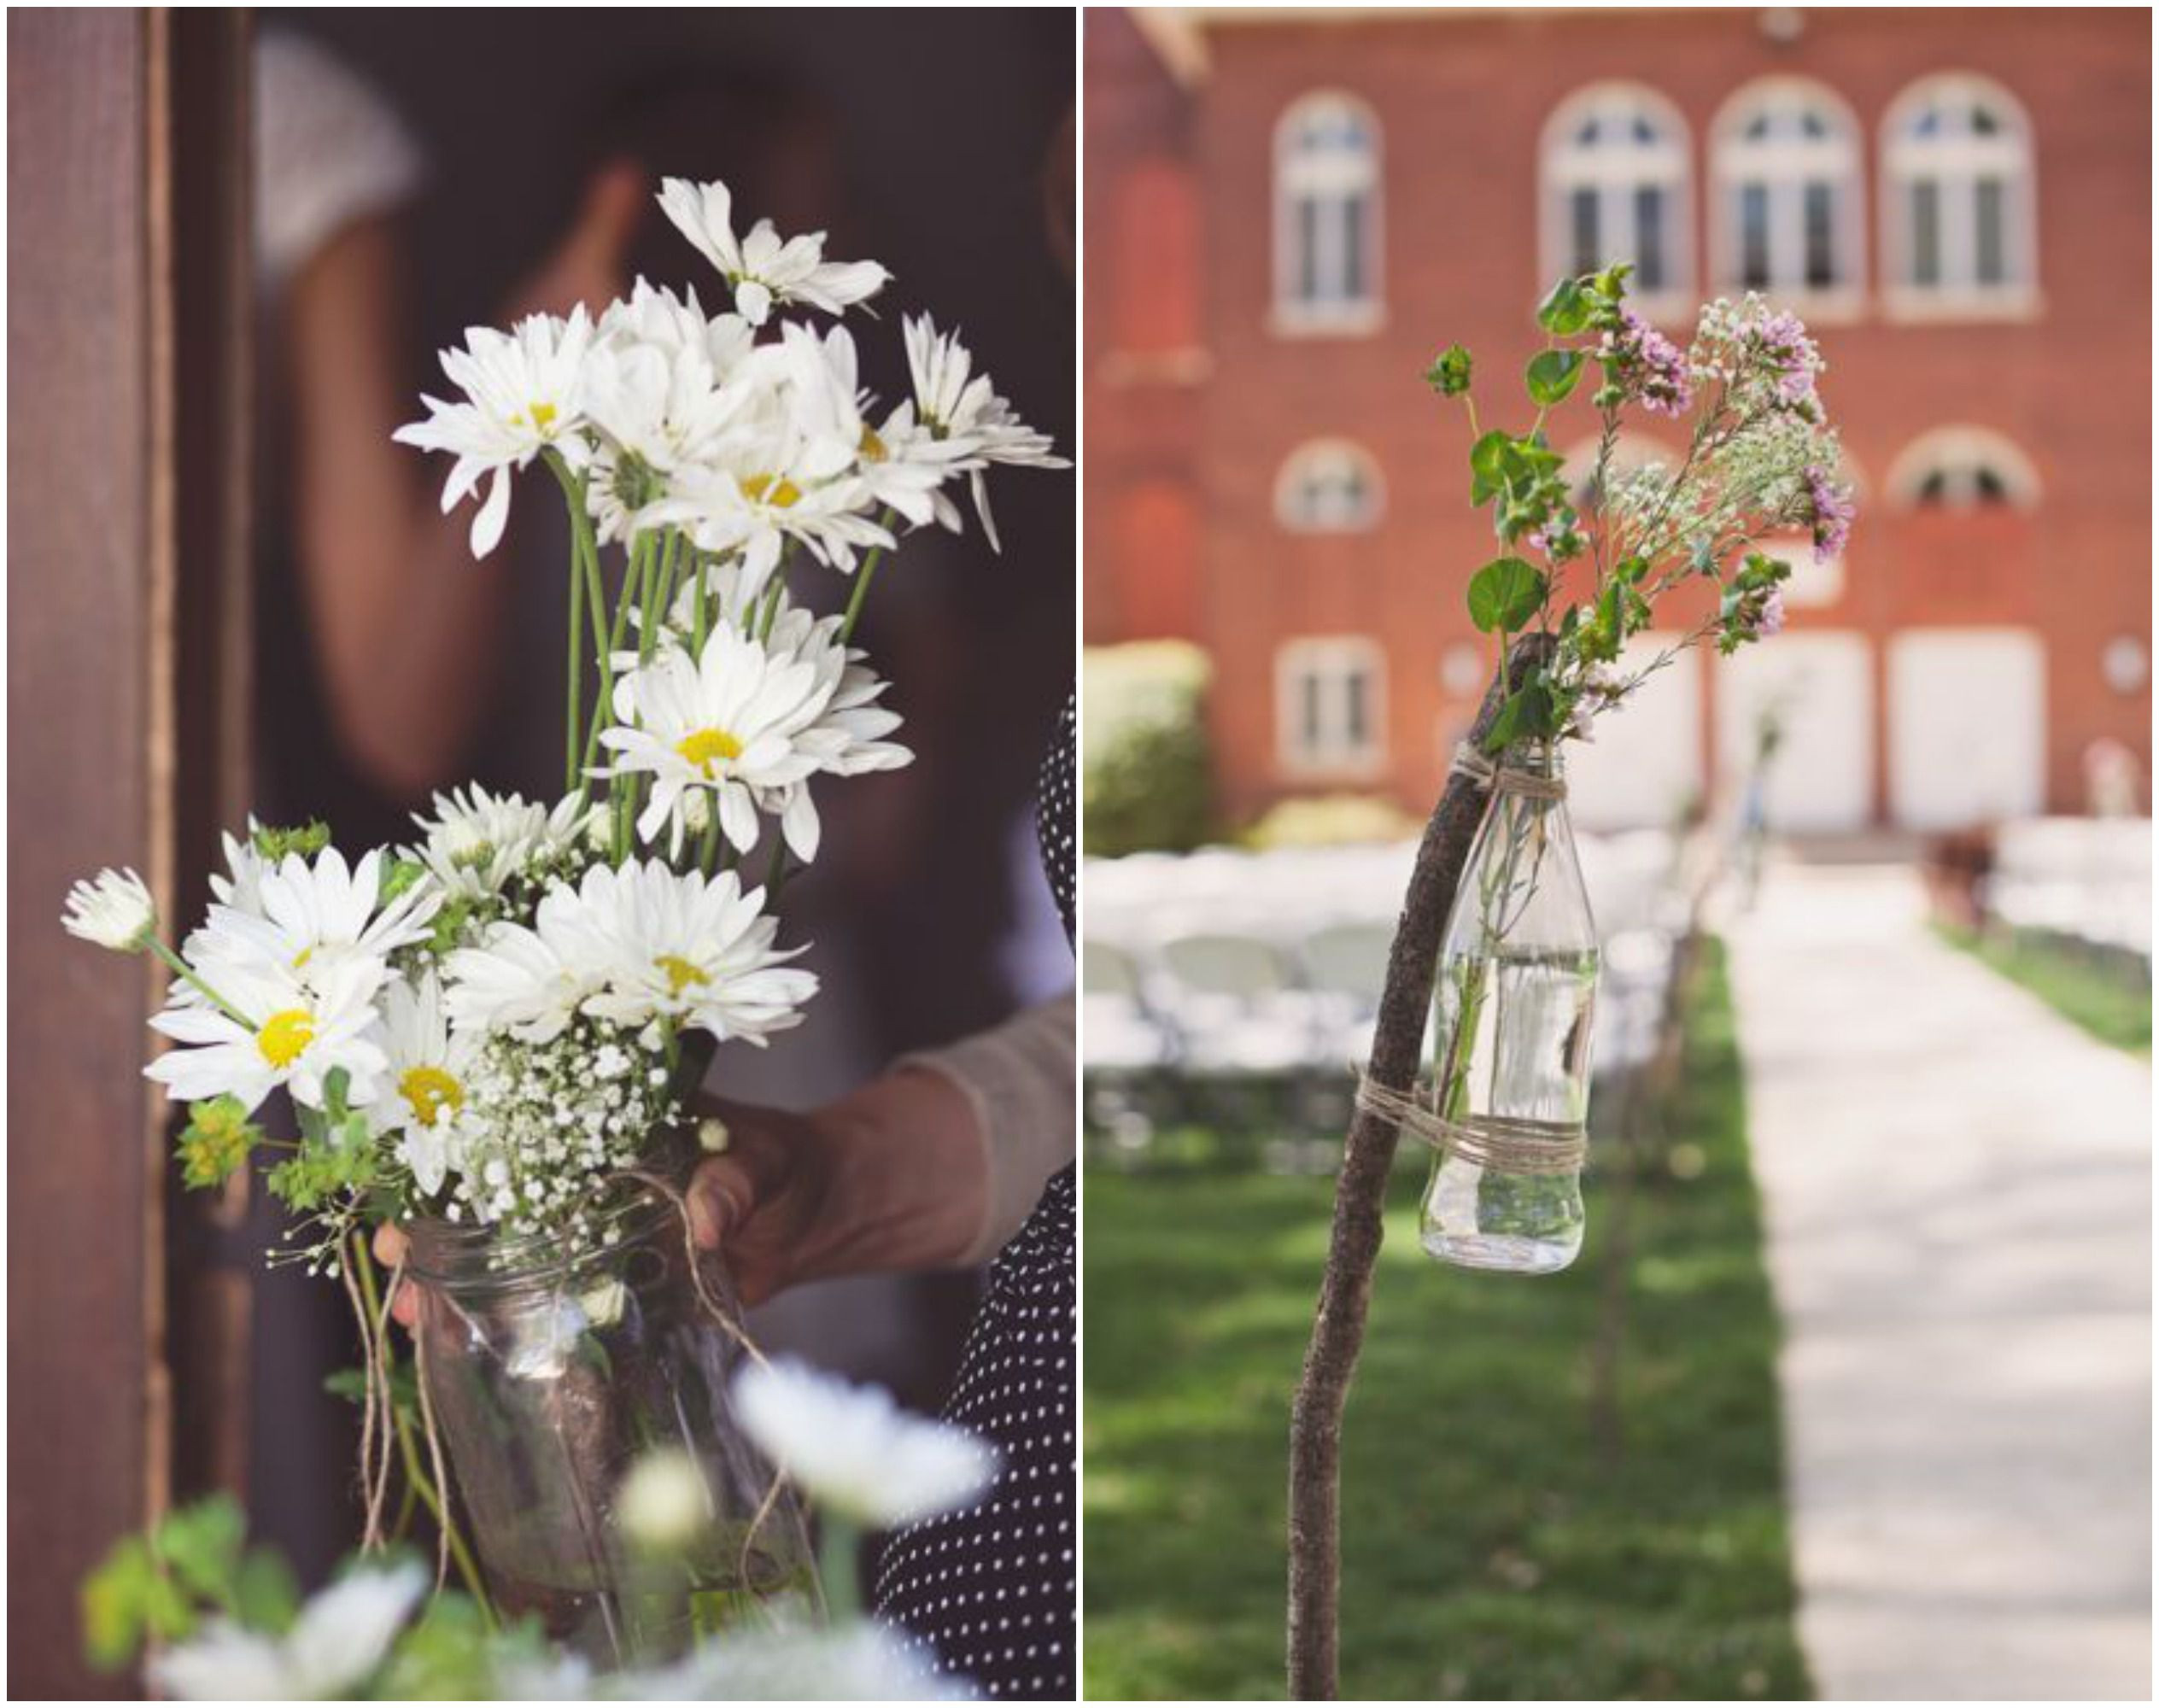 Best ideas about DIY Country Wedding . Save or Pin Country Rustic DIY Wedding Rustic Wedding Chic Now.